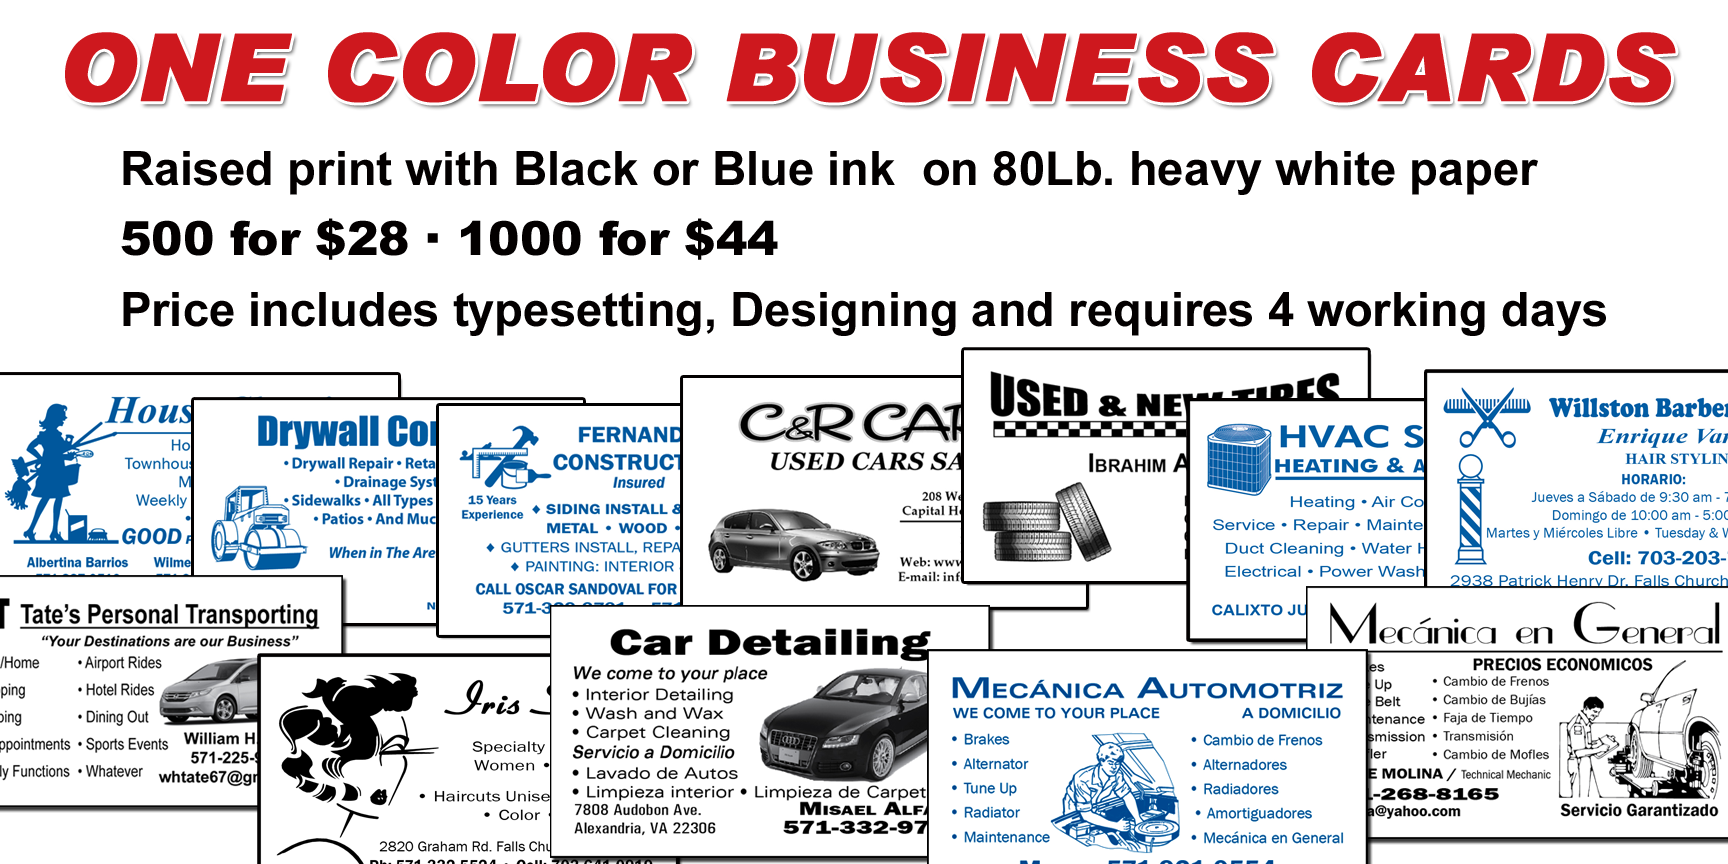 Dupont printing service one color business cards one color business cards reheart Image collections